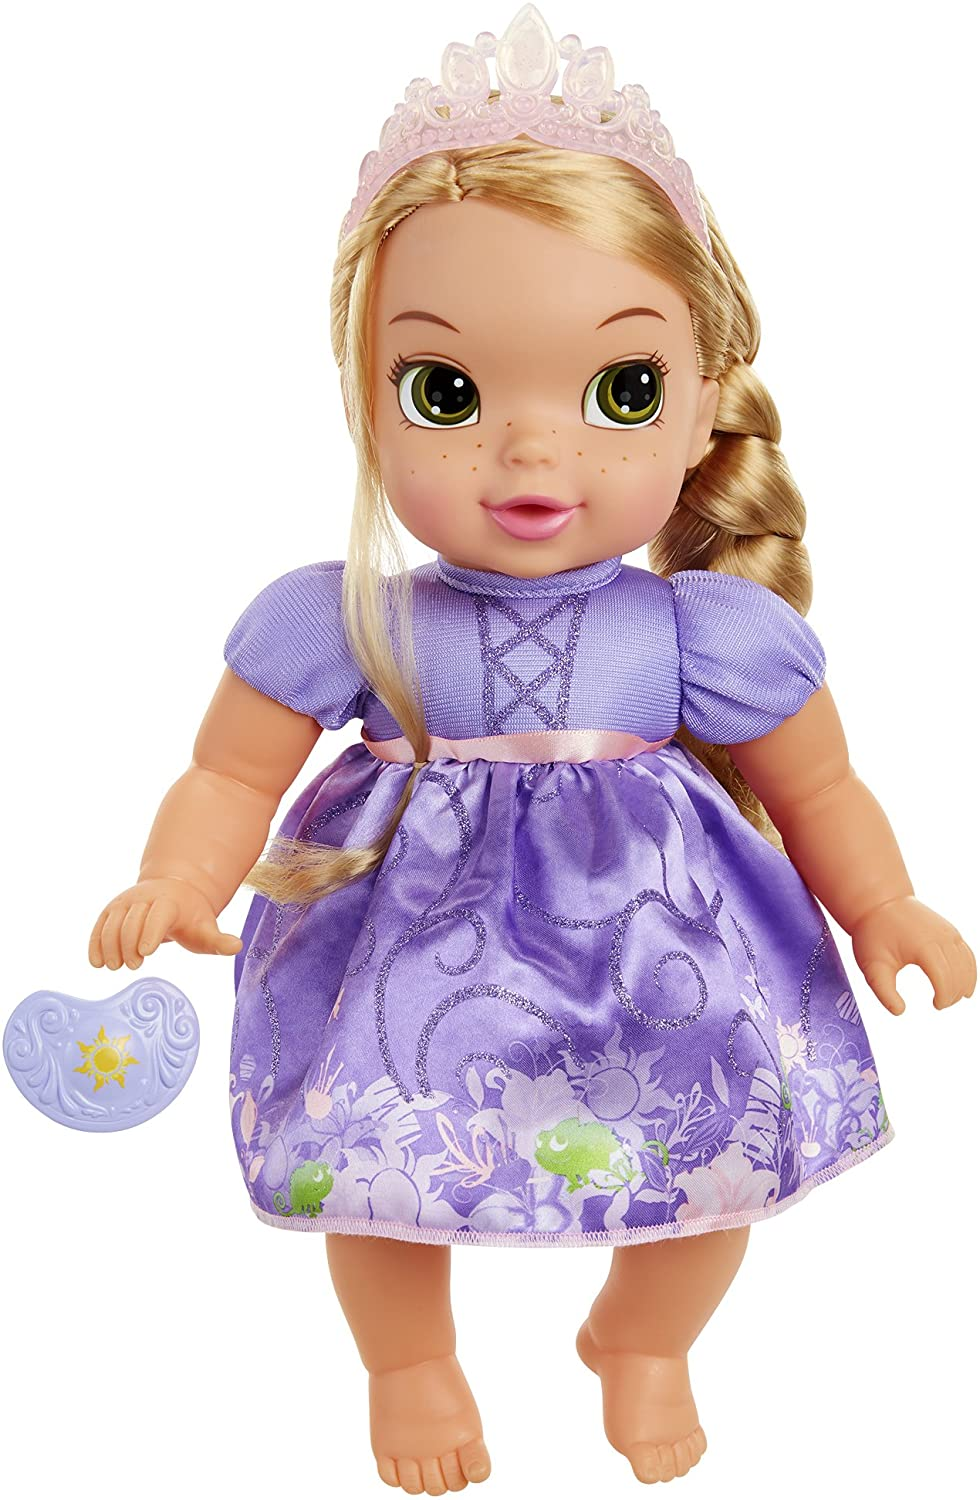 Amazon Com Disney Princess Deluxe Baby Rapunzel Doll With Pacifier Baby Doll Toy Toys Games